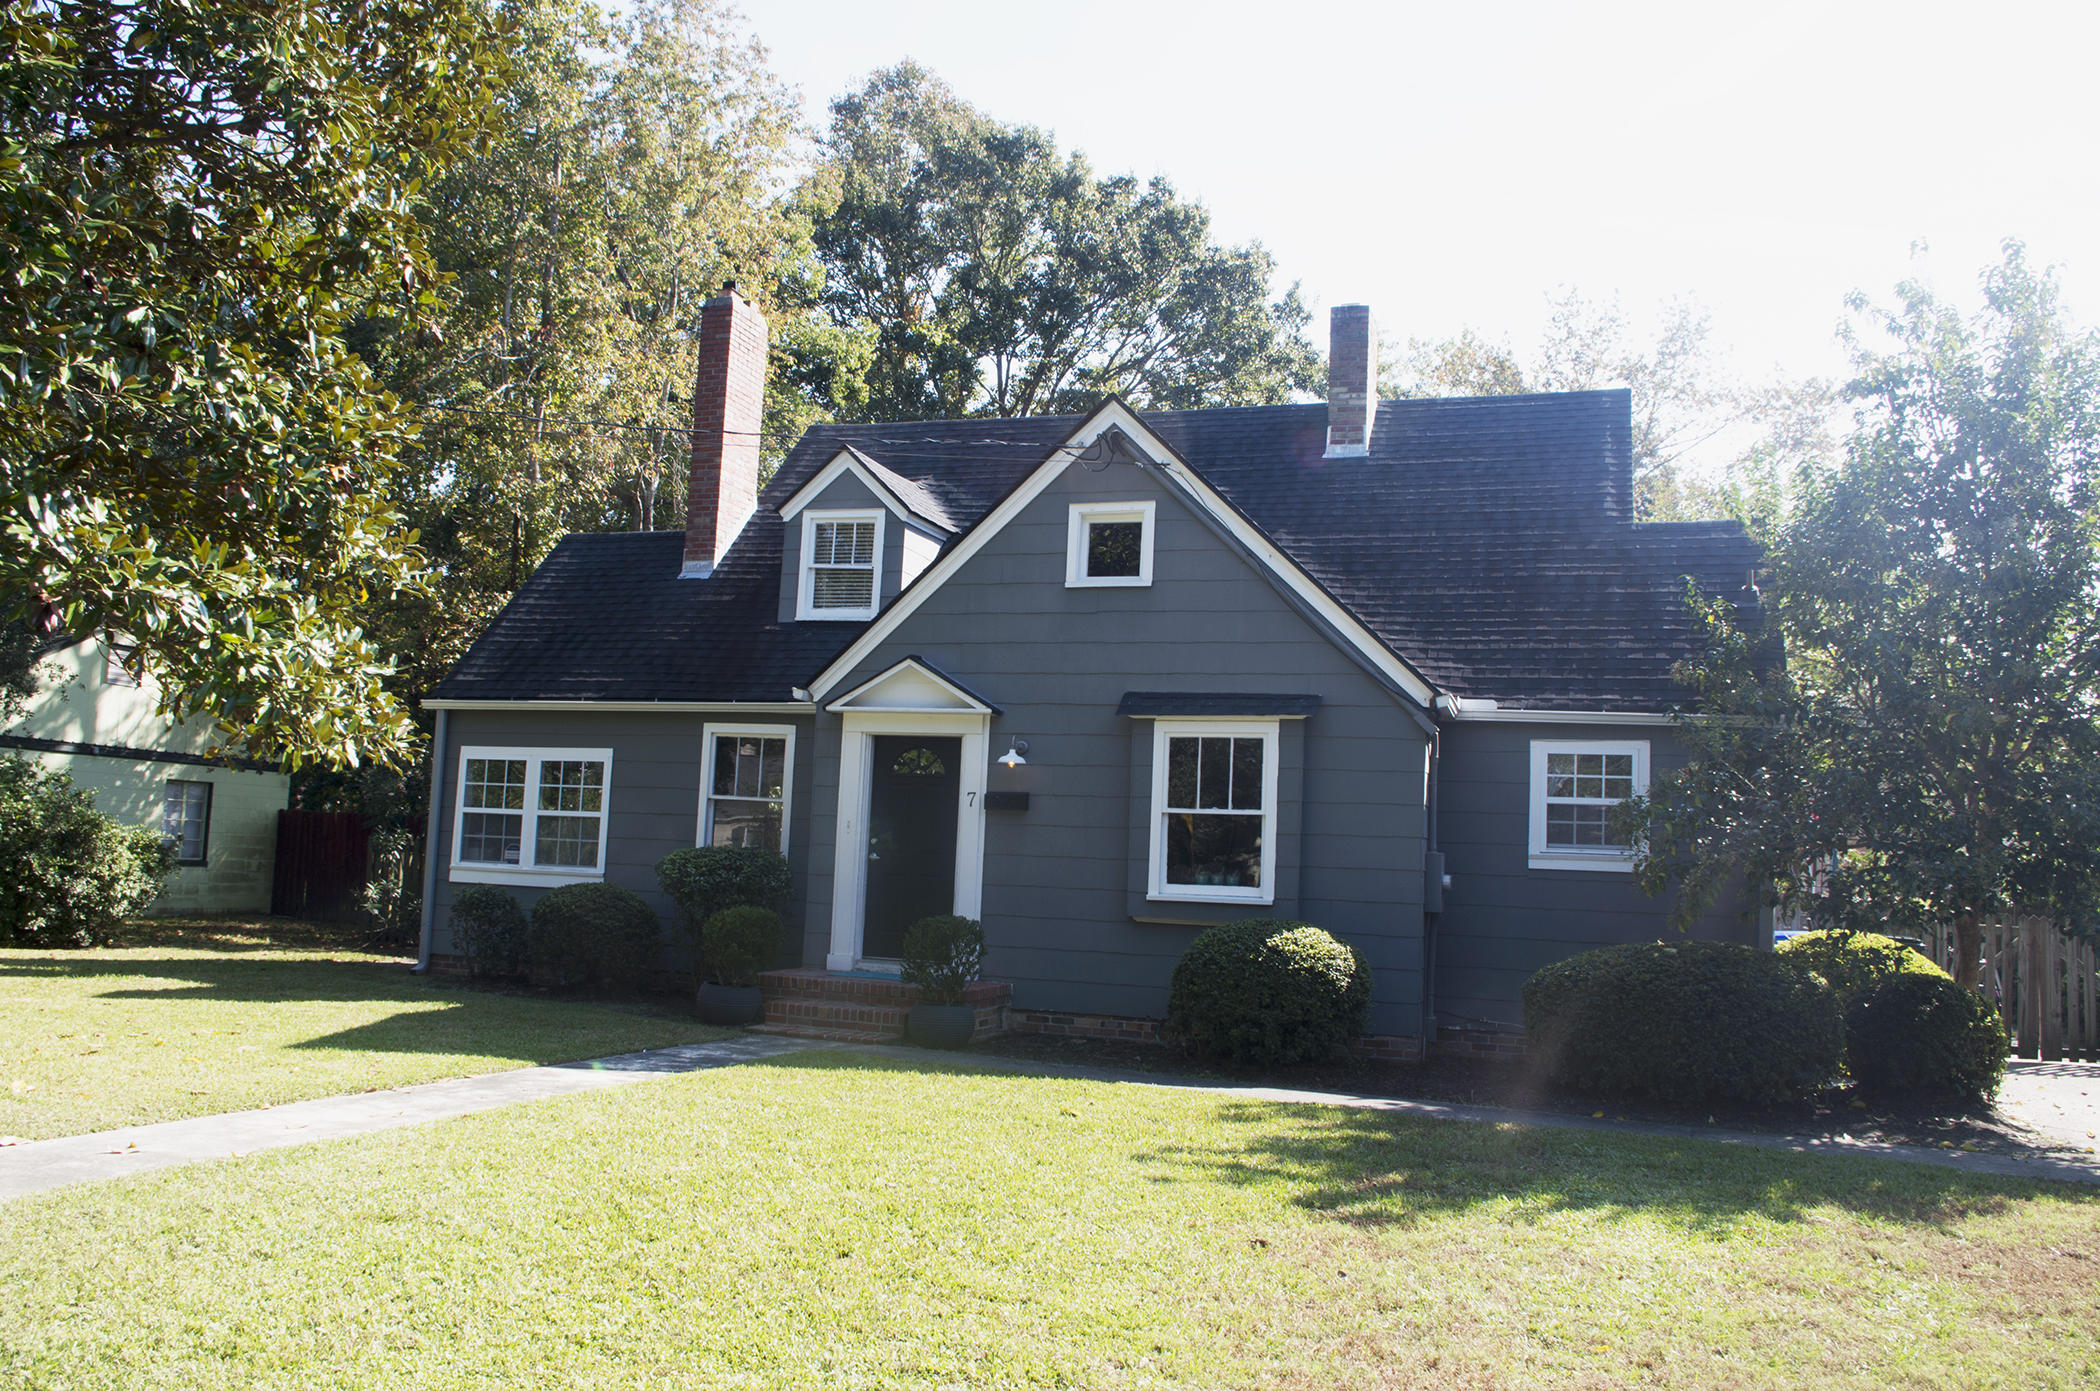 Home for sale 7 Riverdale Drive, Avondale, West Ashley, SC